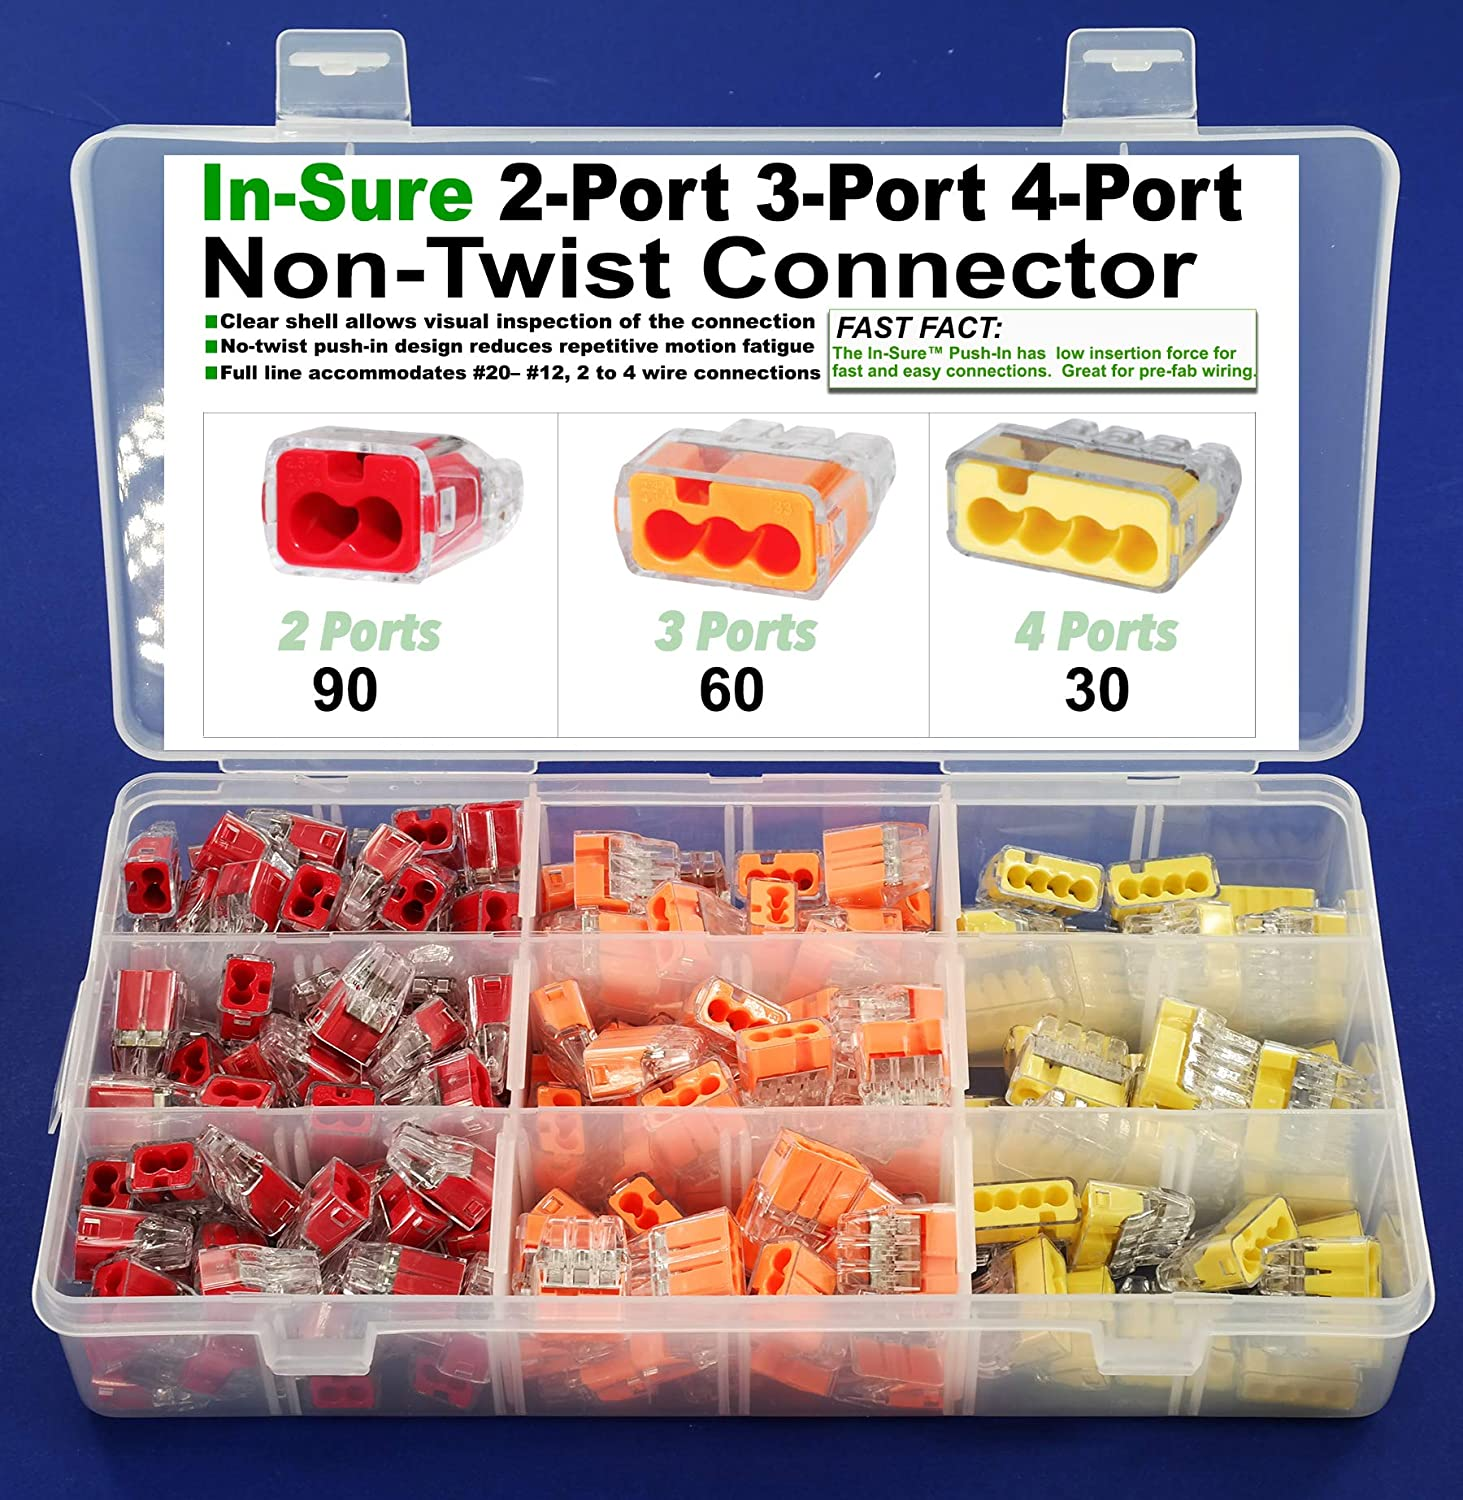 and Tin Bonded Wire Stranded 34 Red Non-Twist 2 Conductor Connector for Solid Ideal in-Sure 2-Port 30PK